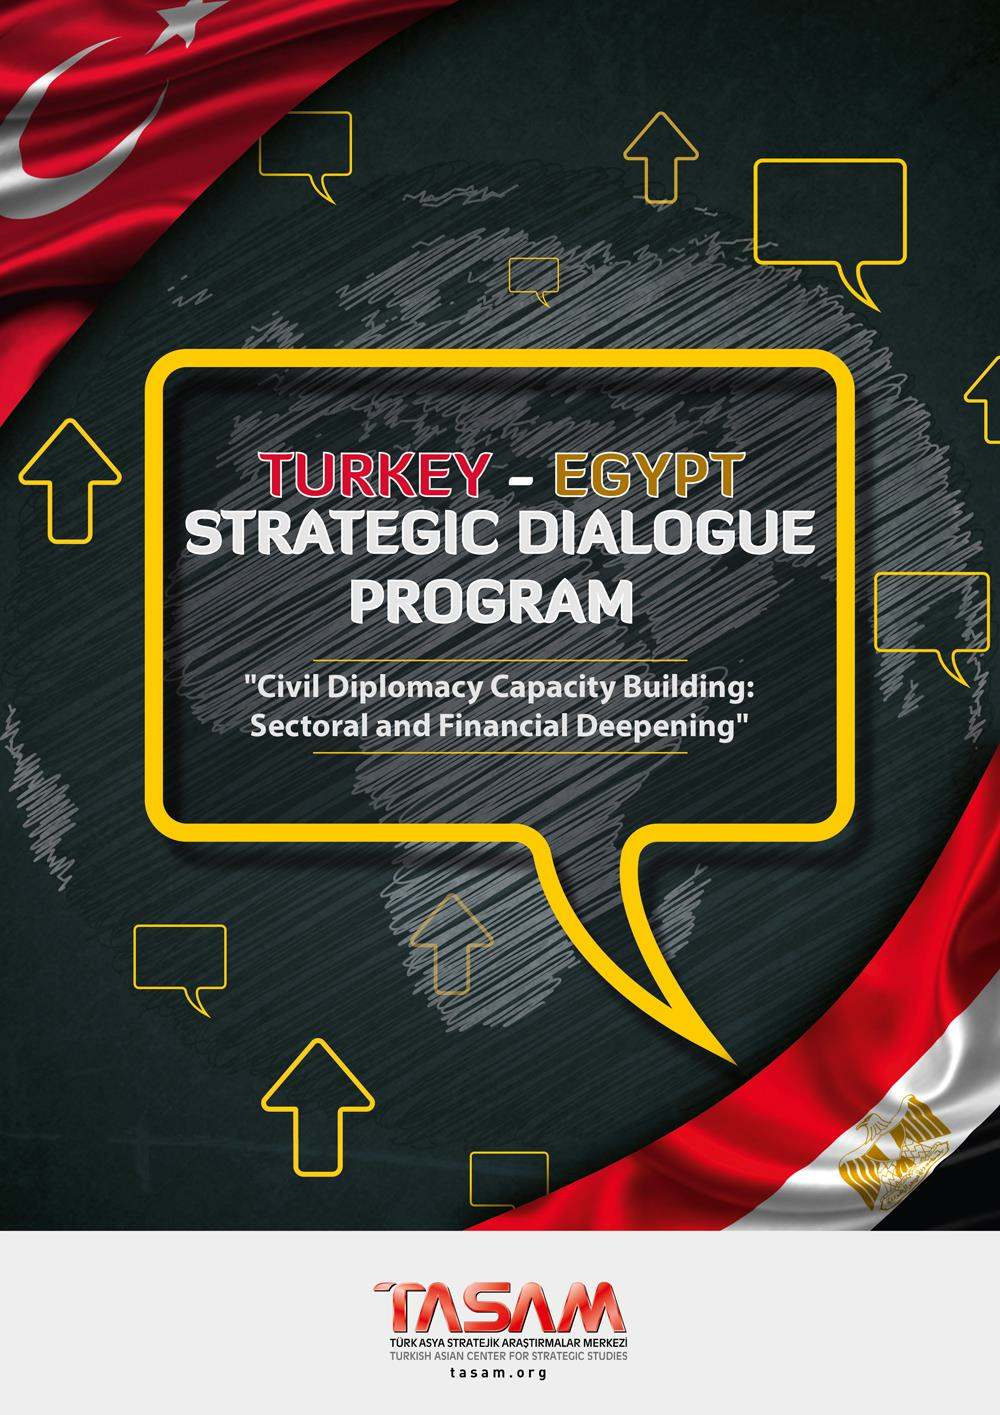 Turkey - Egypt Strategic Dialogue Program